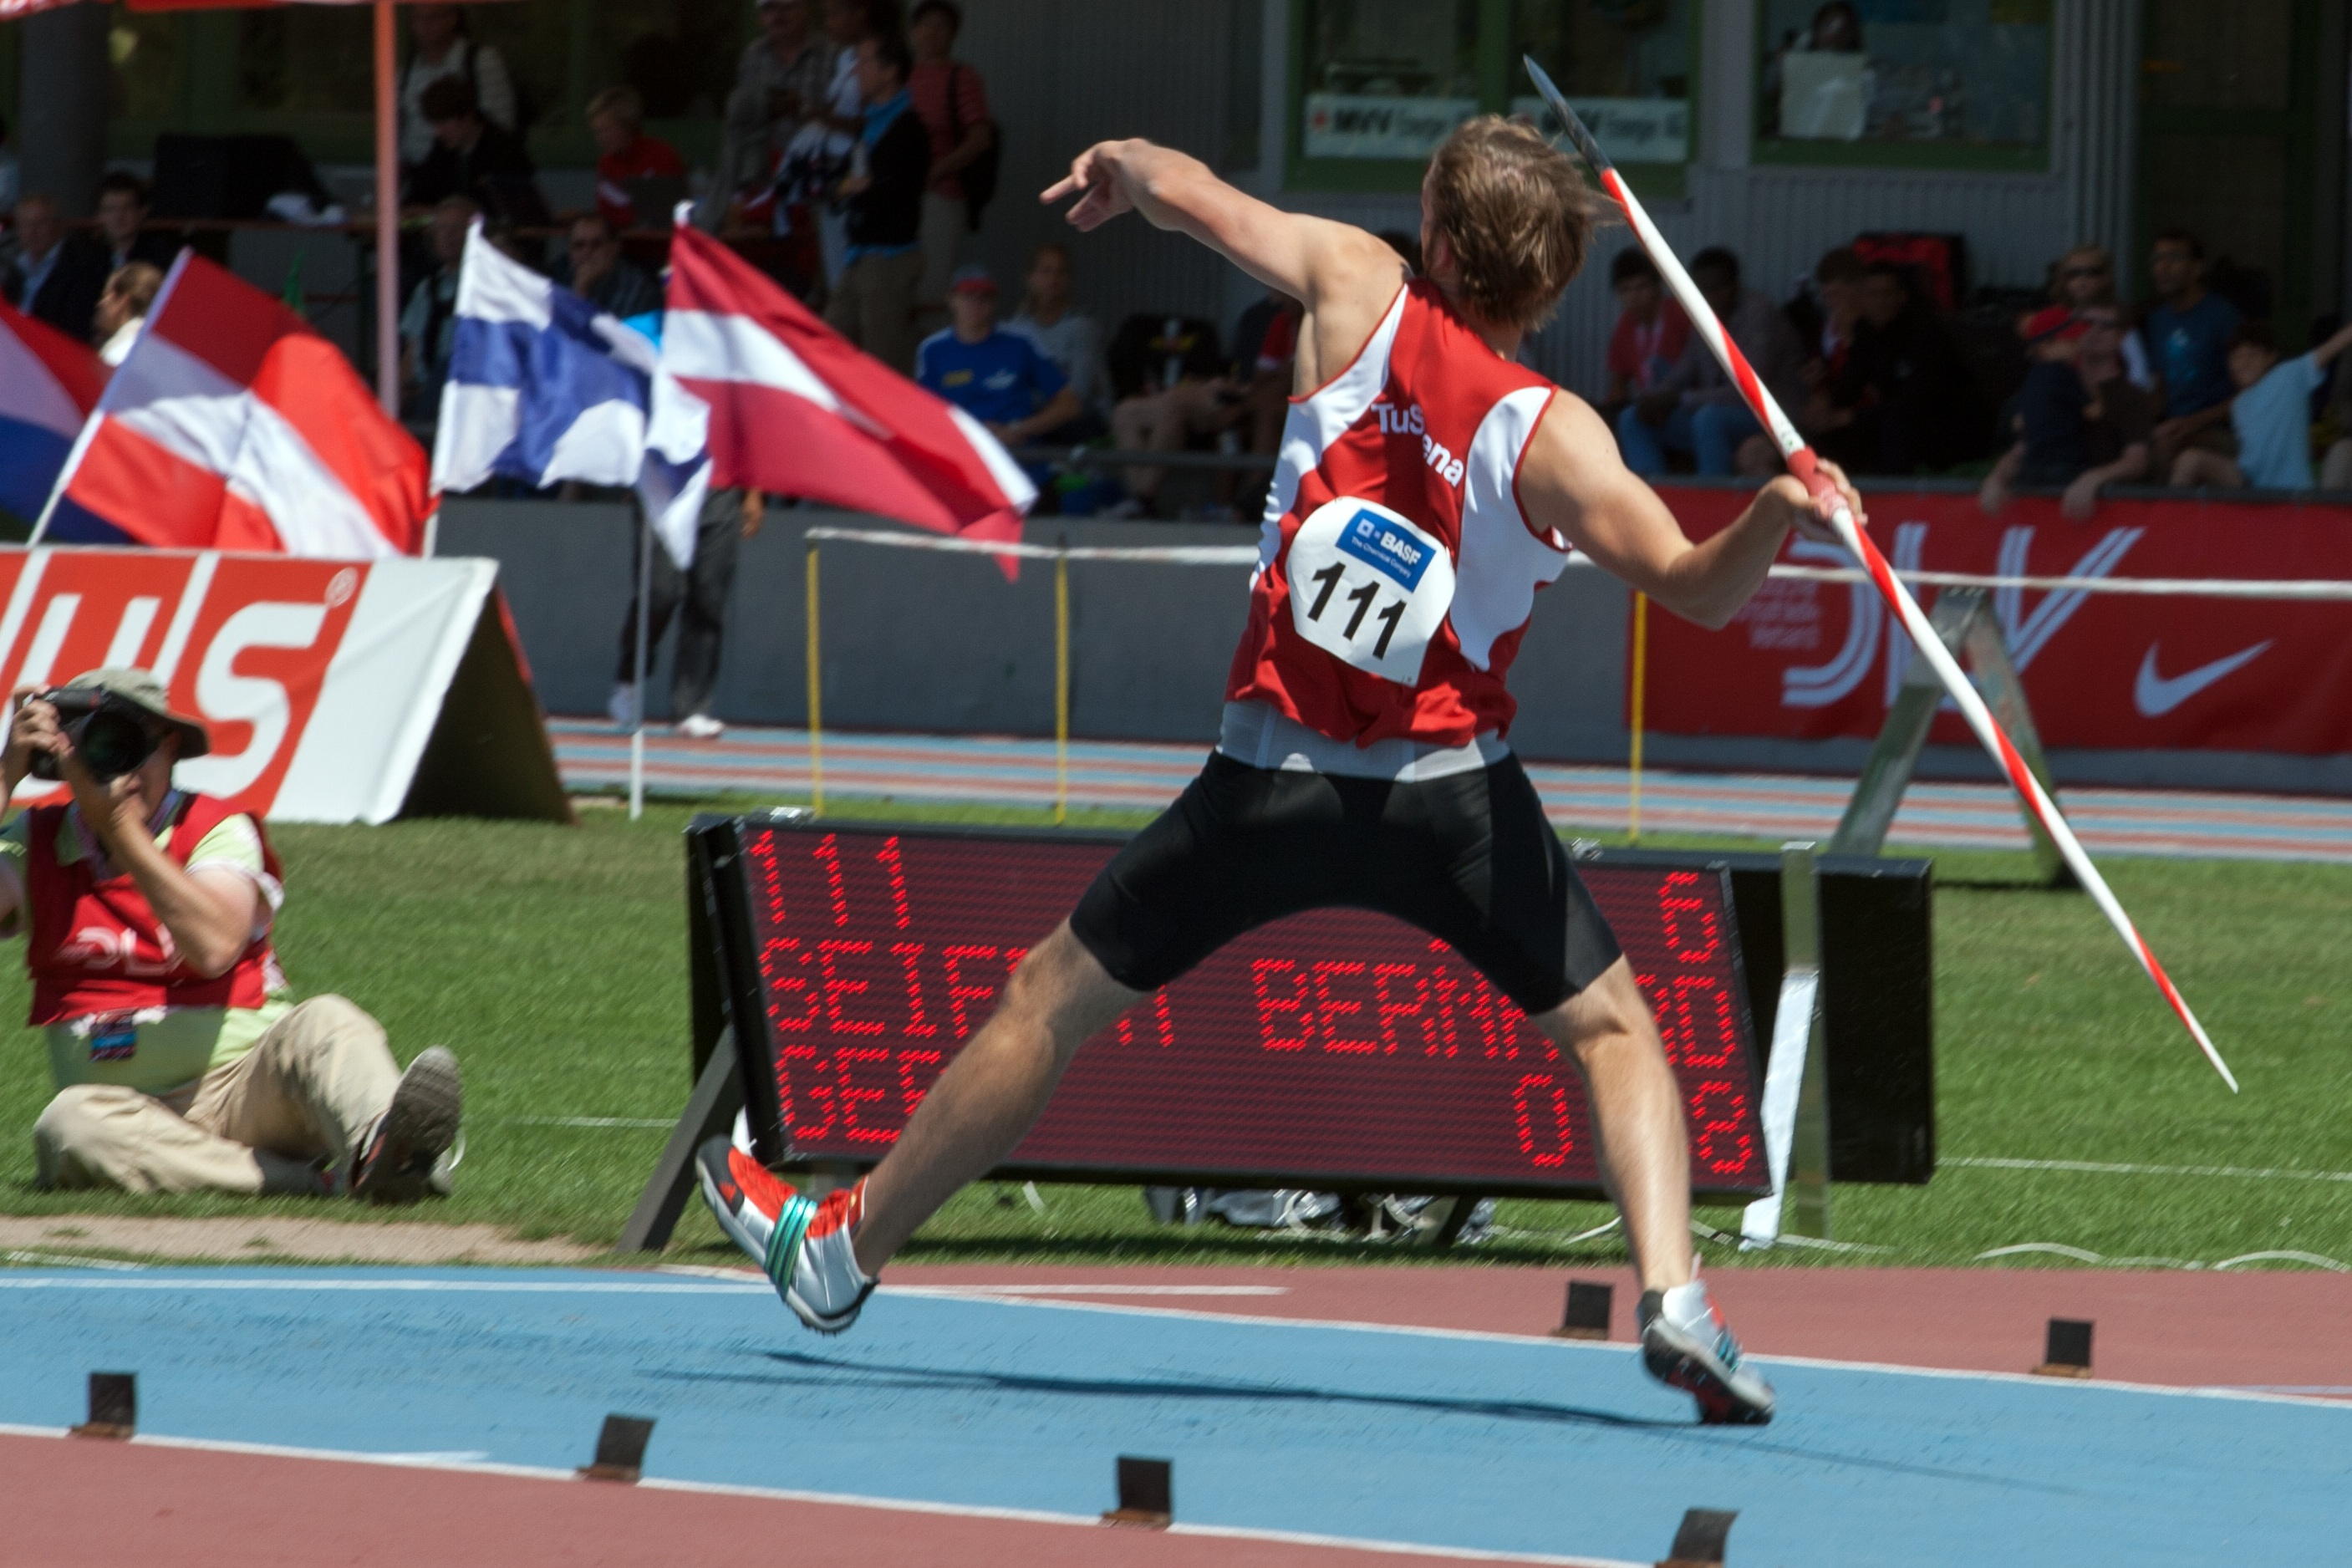 Rules for the Olympic Sport of Javelin Throwing  ThoughtCo